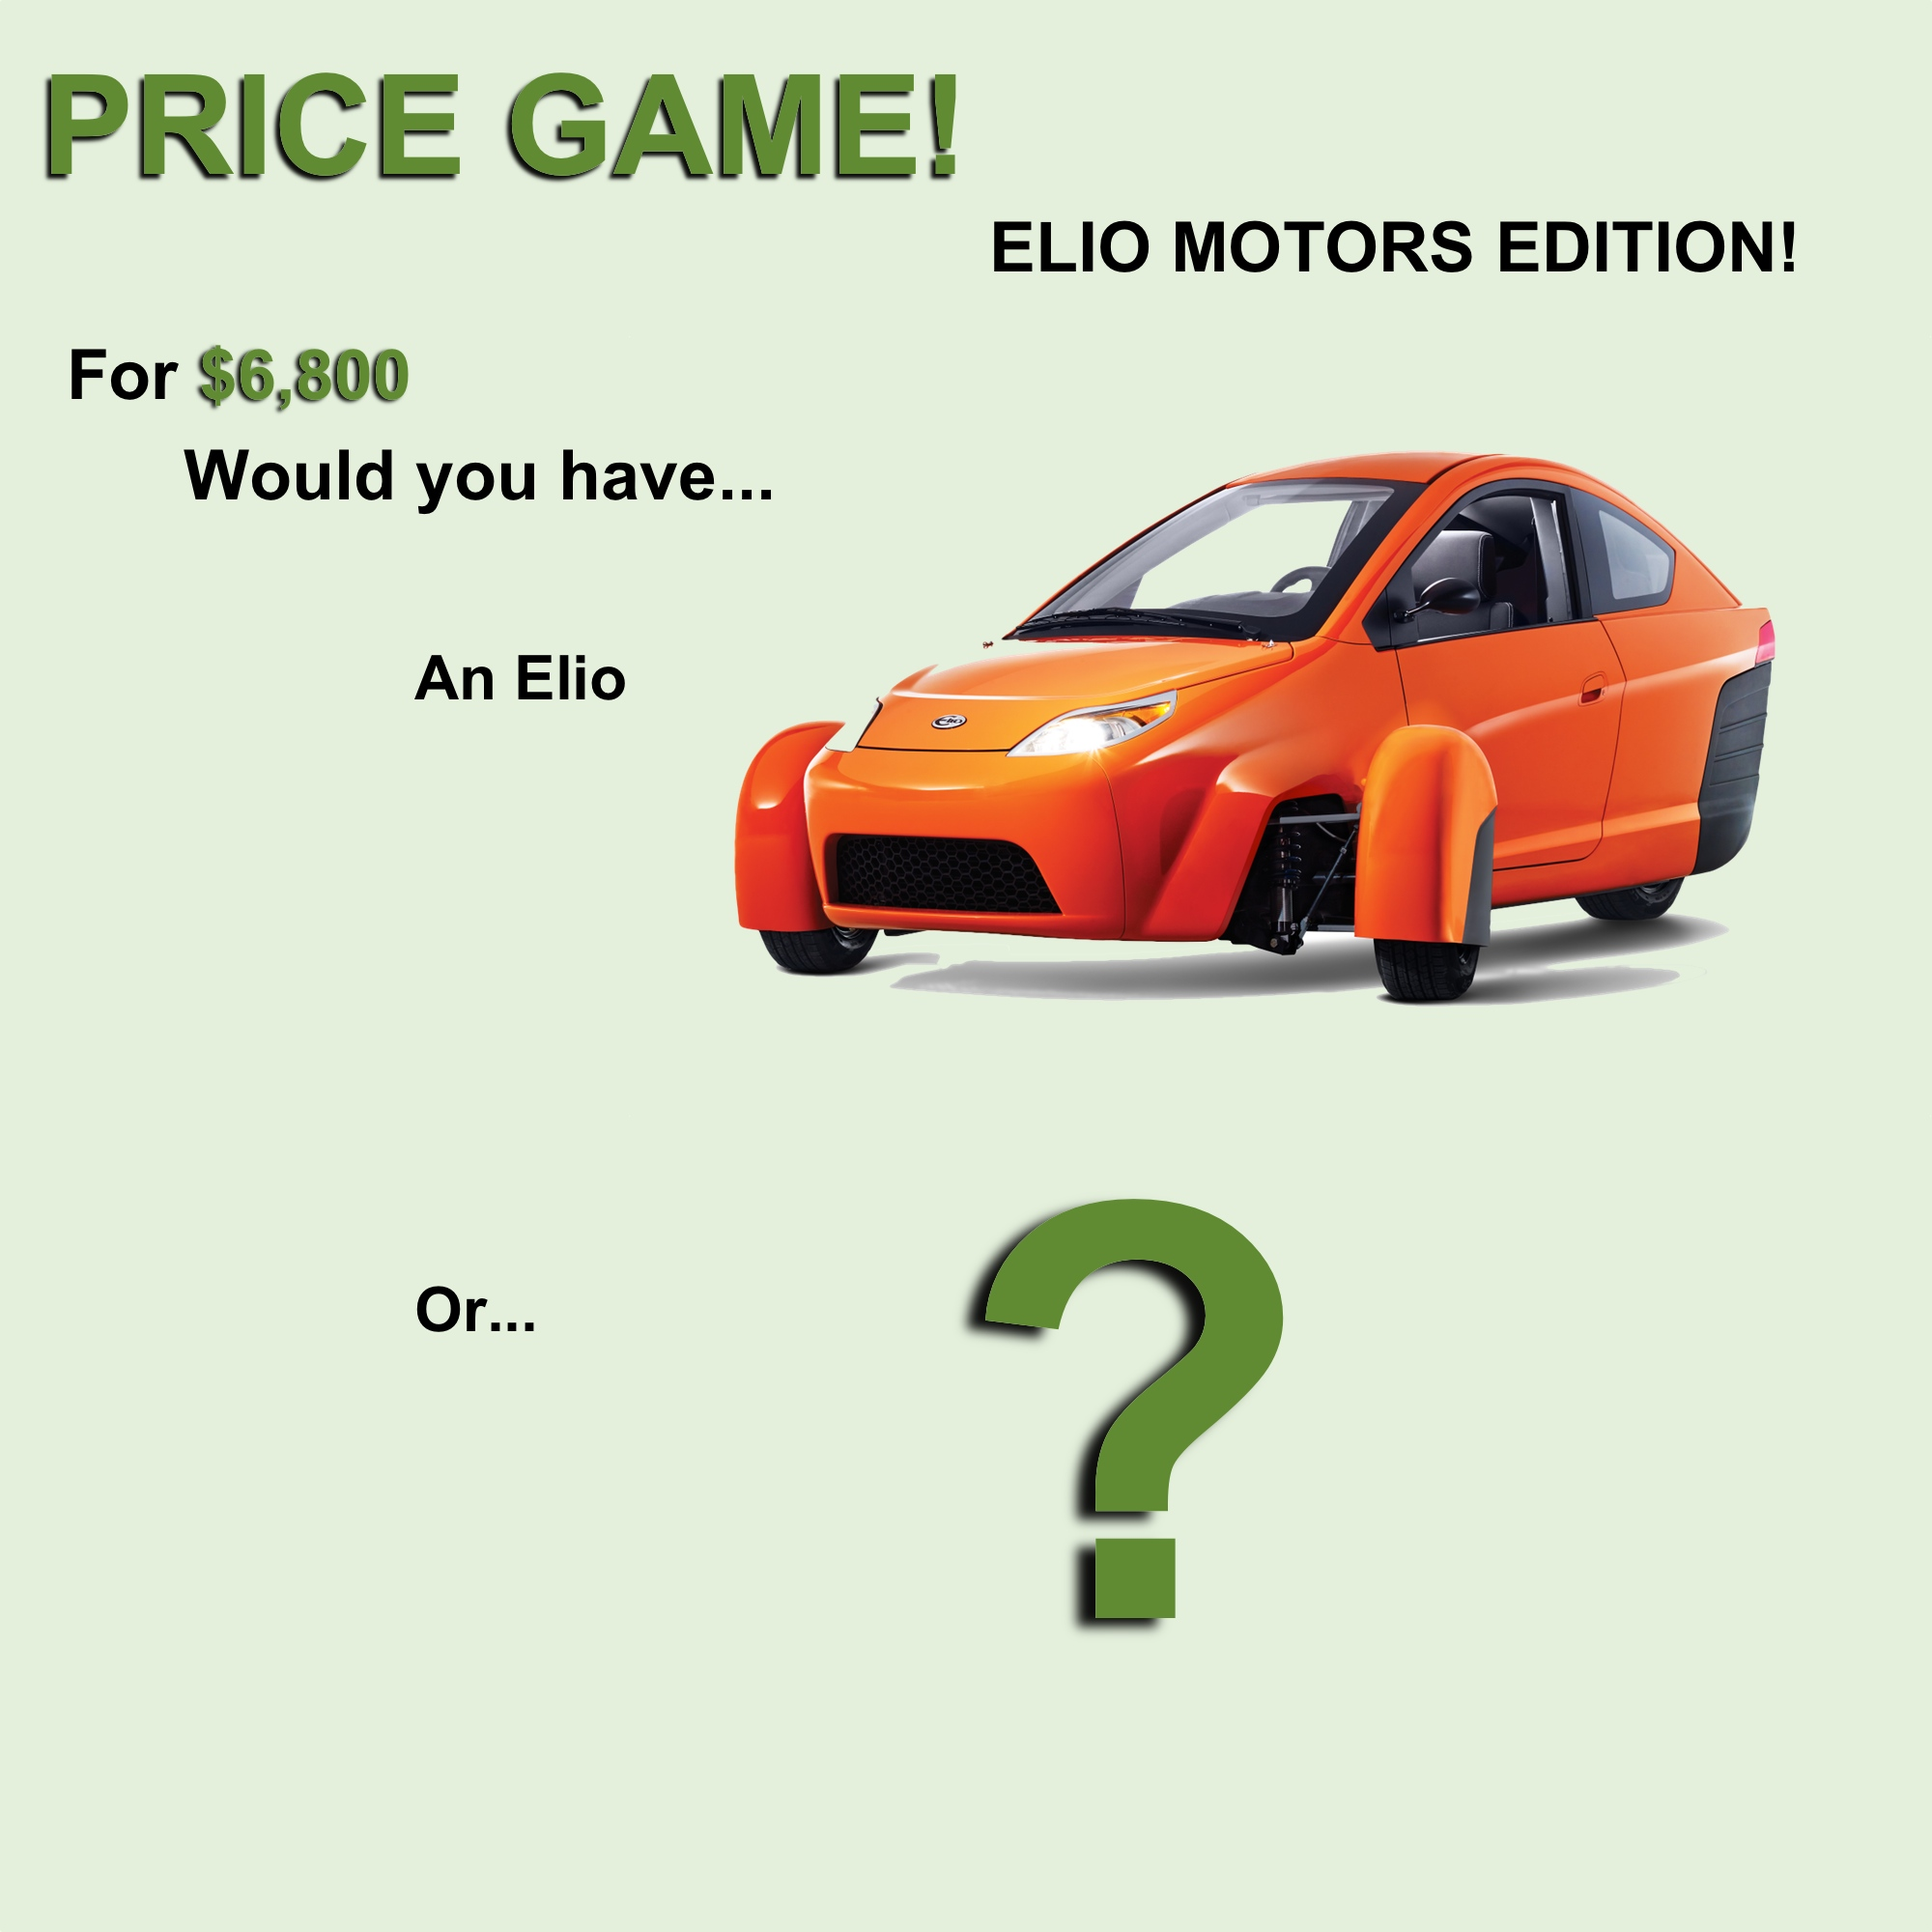 Elio Motors Price Game